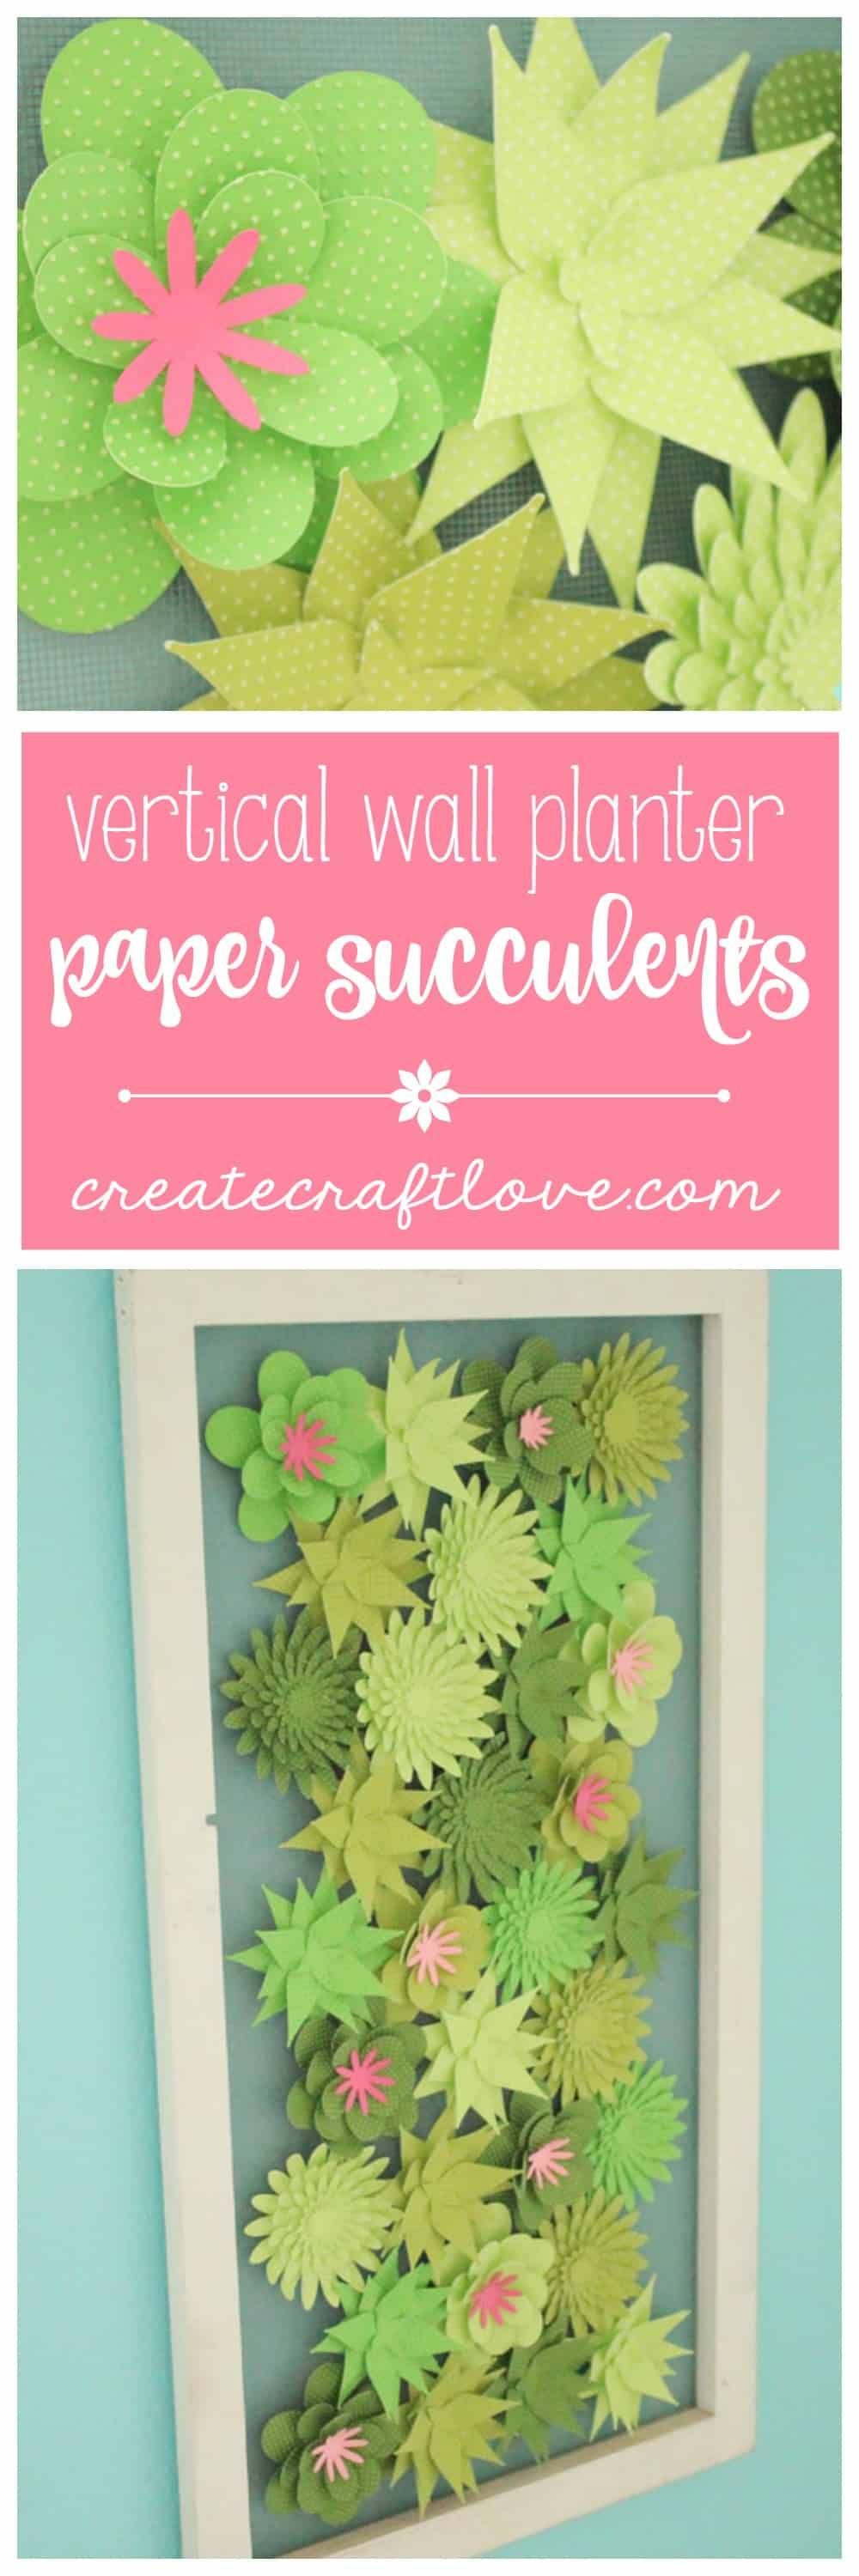 Create this fabulous faux Vertical Wall Planter with Paper Succulents from the Core'dinations paper line at Darice.com! #spon